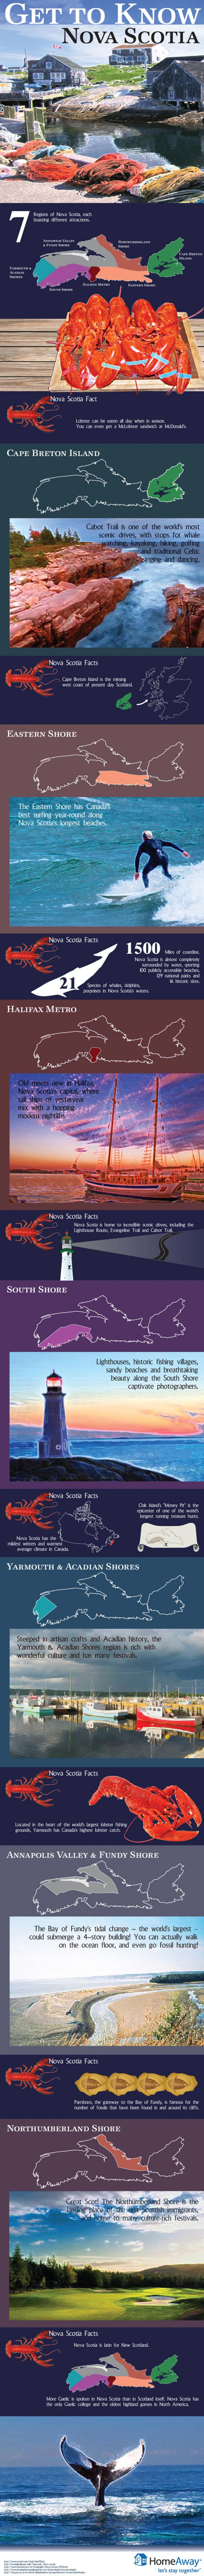 Get to Know Nova Scotia Infographic